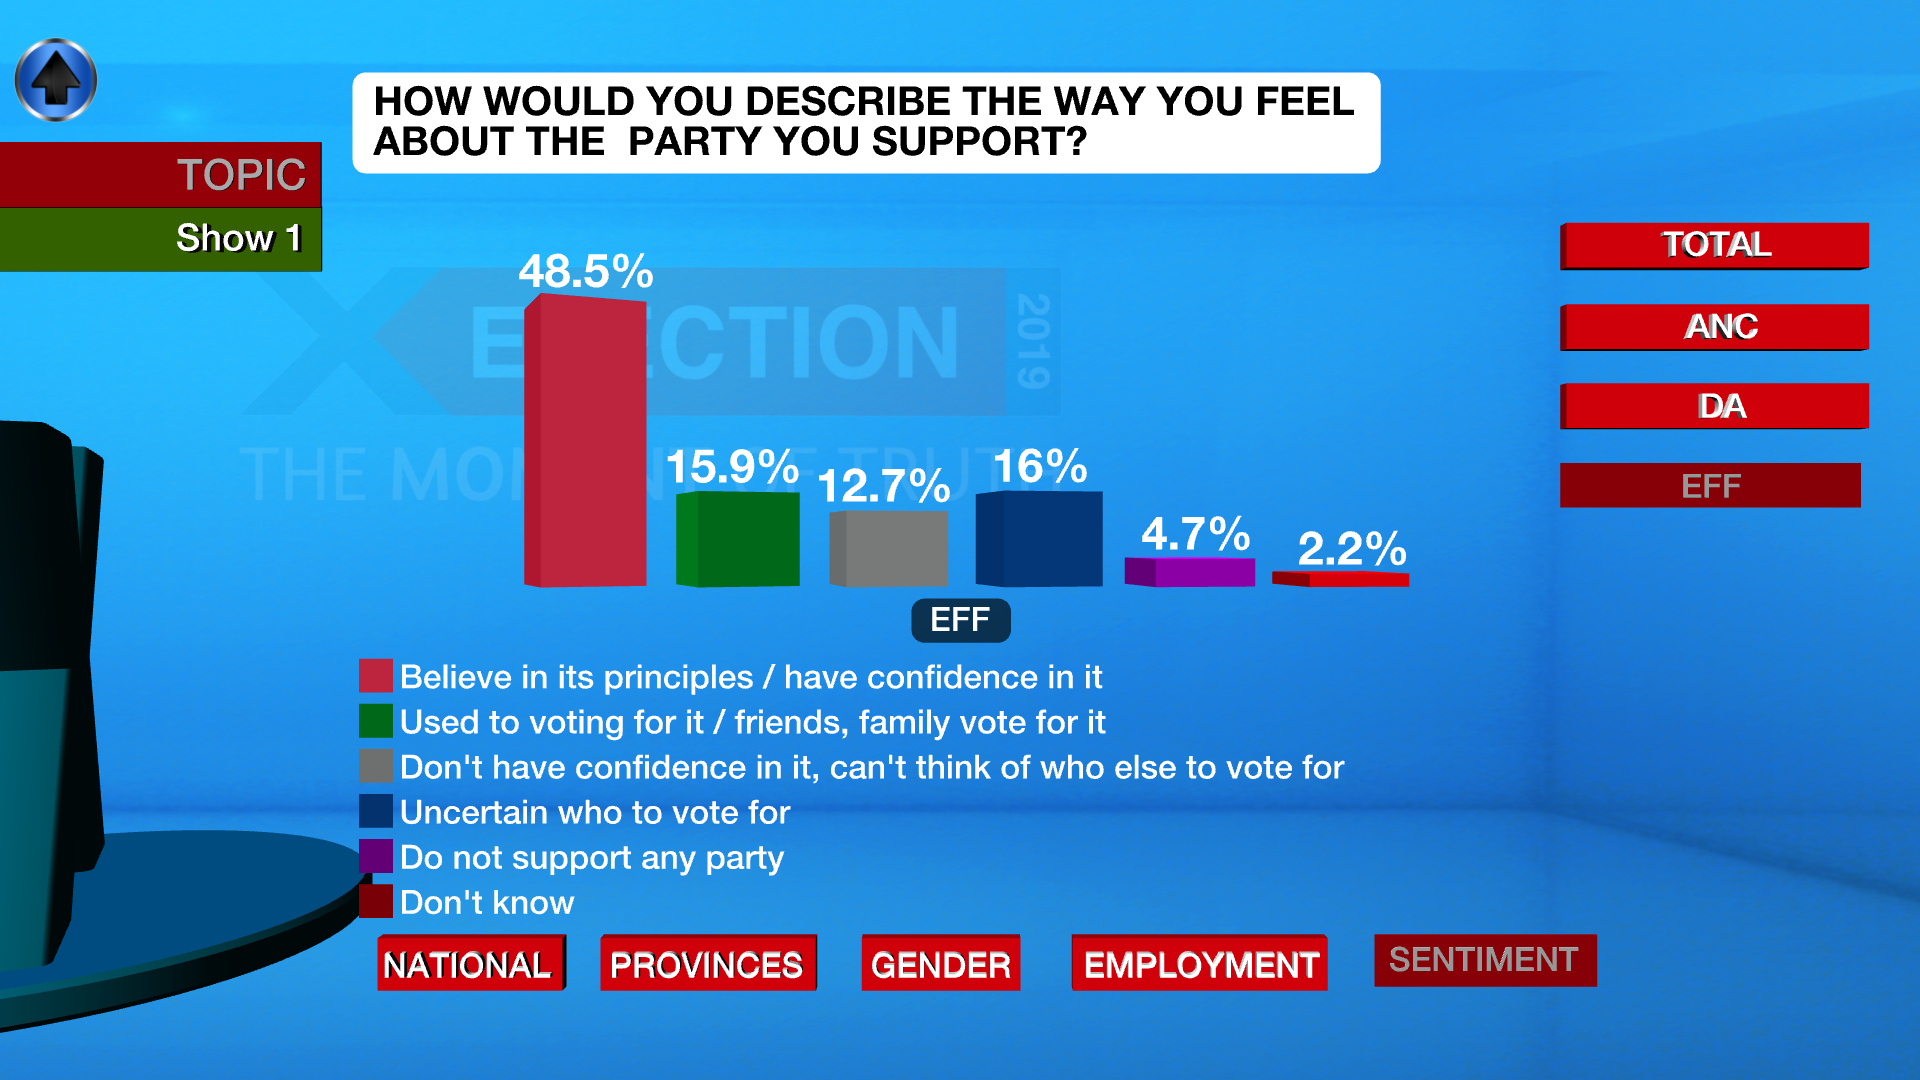 The eNCA MarkData poll looking at the EFF ahead of Election 2019